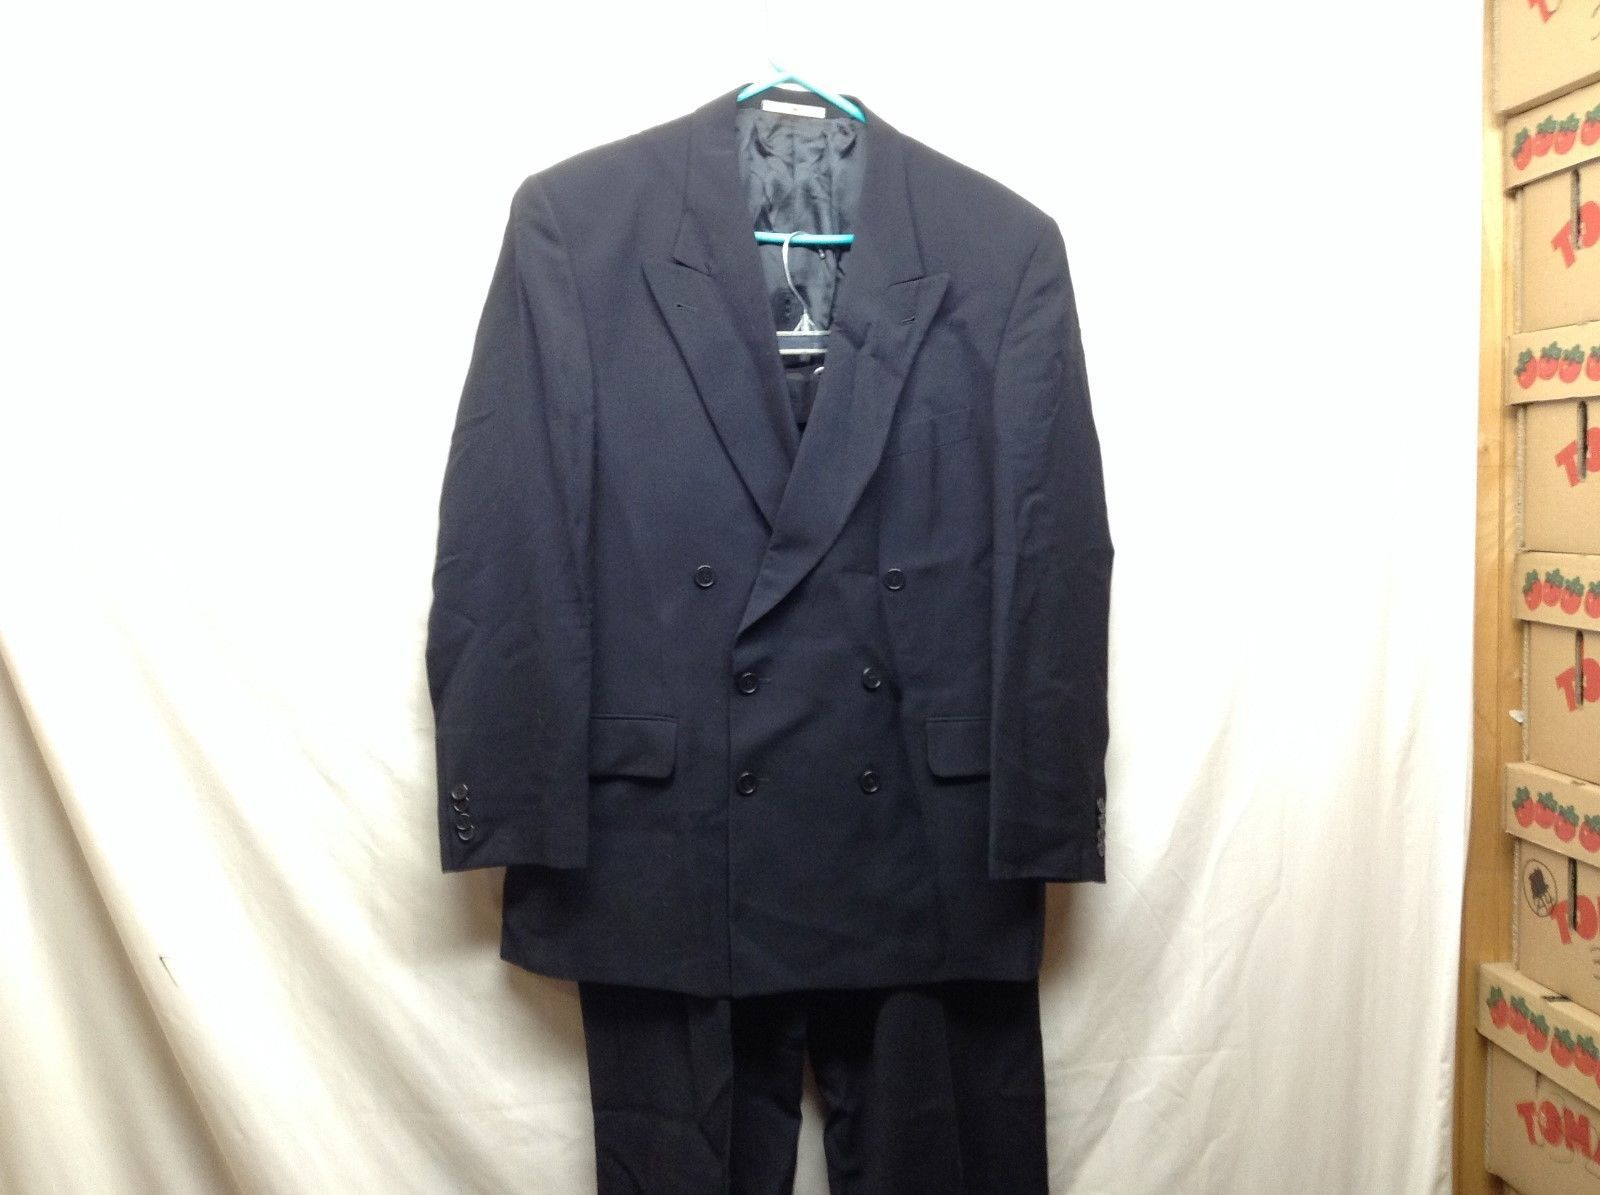 Joseph Abboud Black Wool-blend Suit Sz 42R